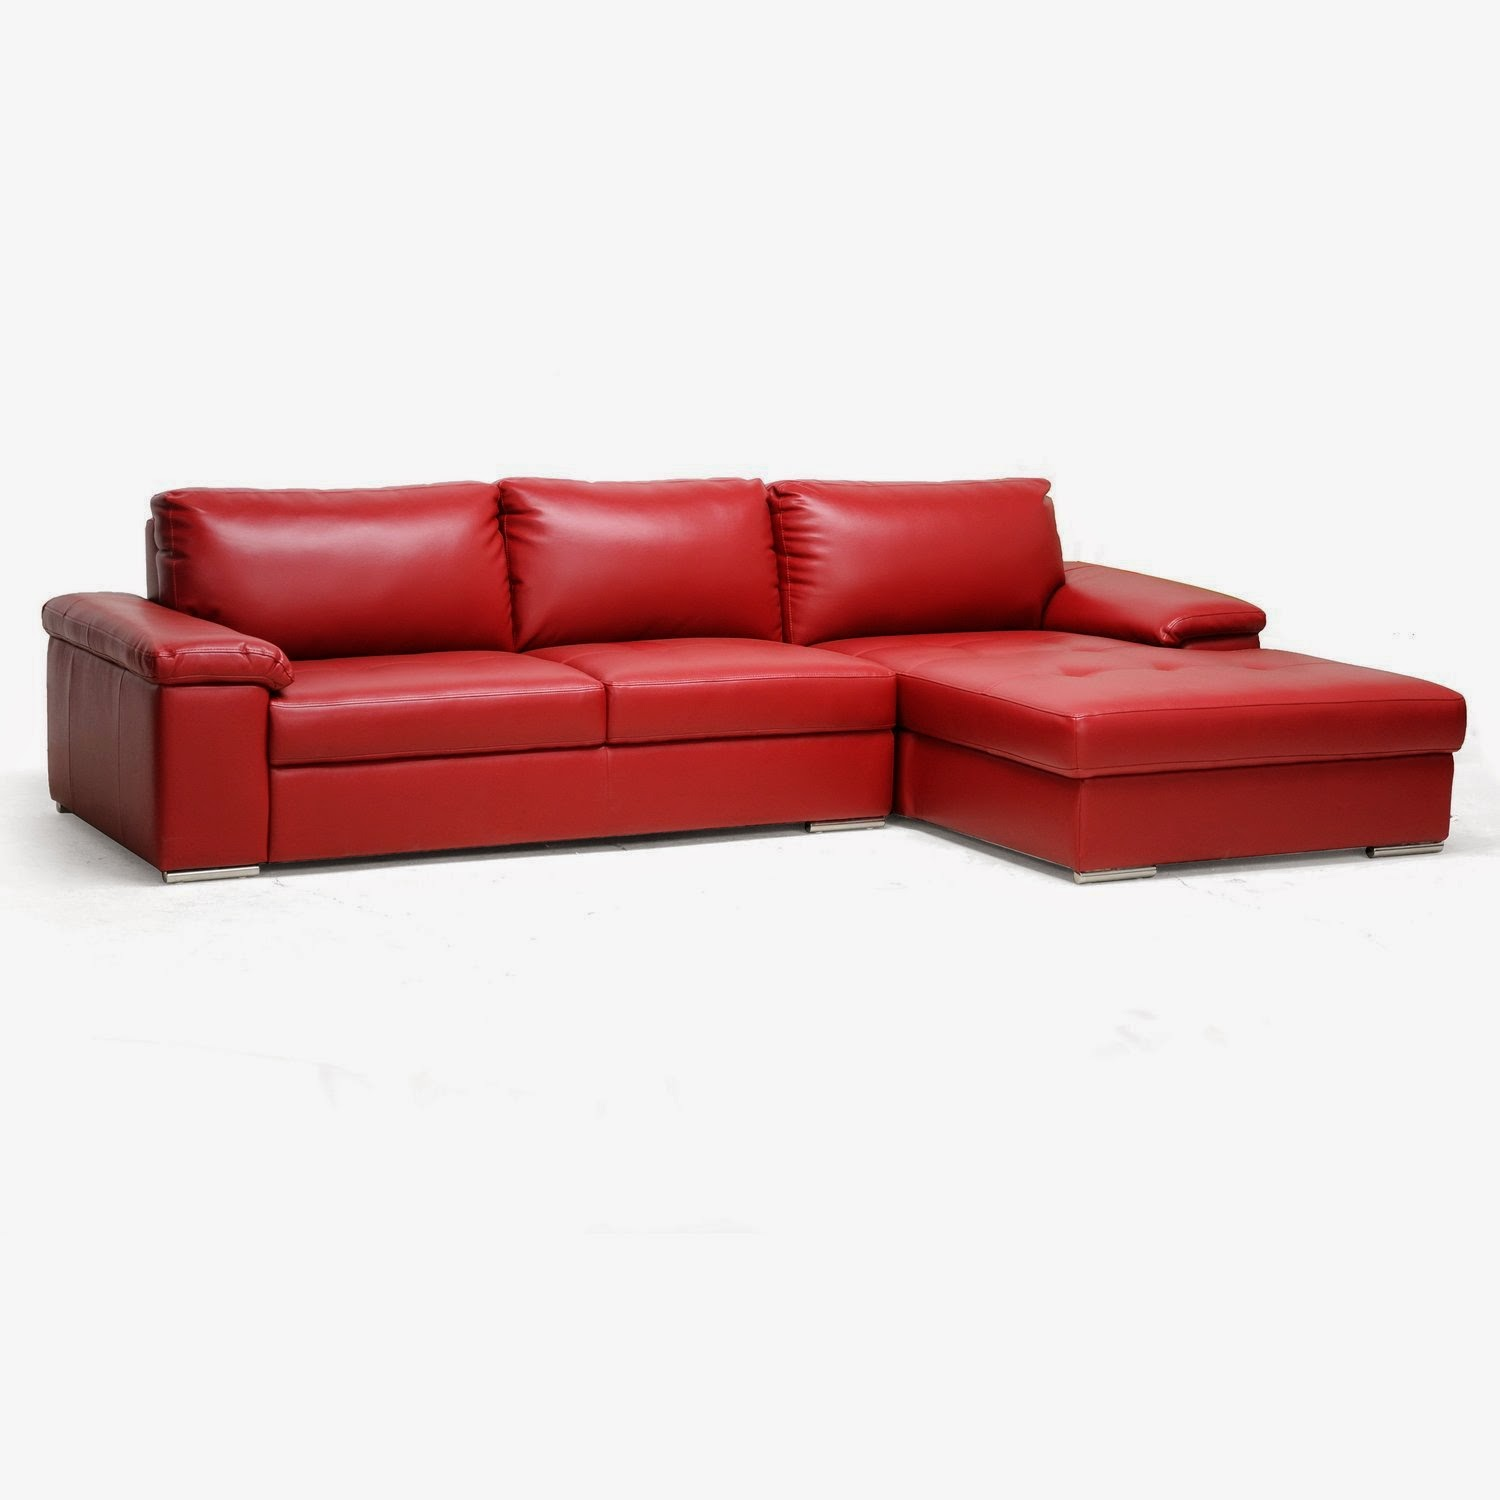 Red couch red leather sectional couch for Couch furniture